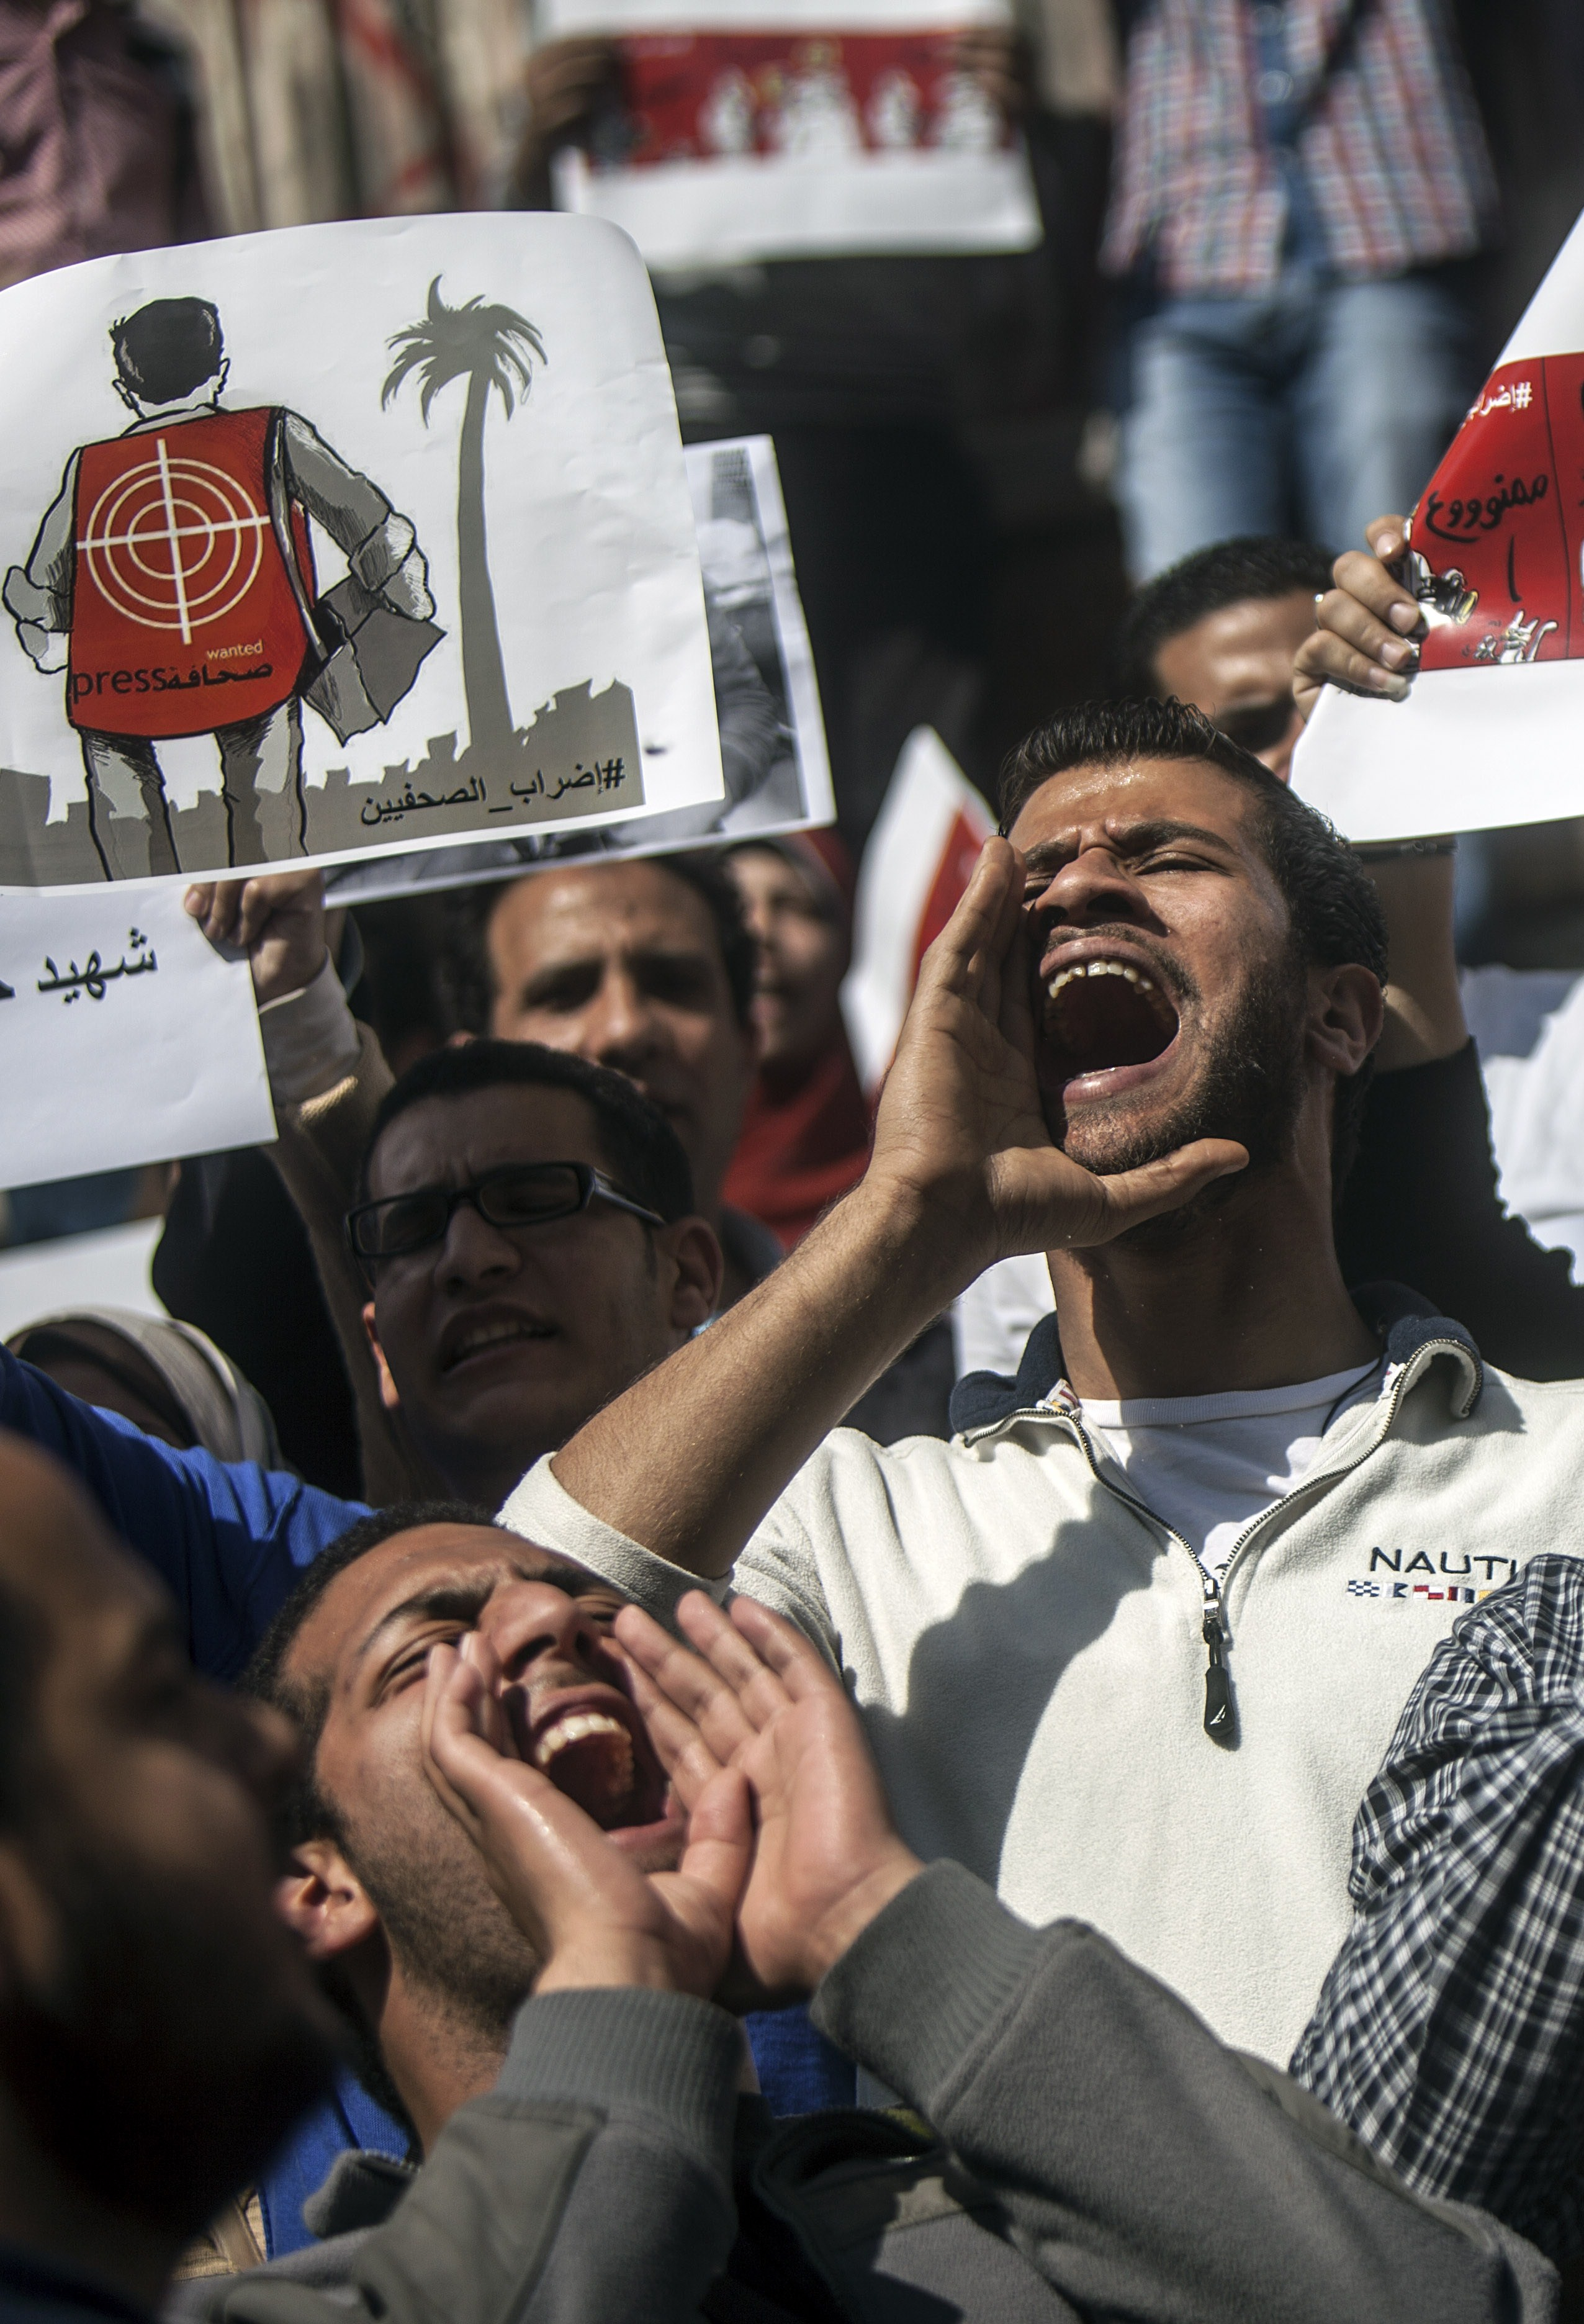 Journalists and photojournalists shout slogans as they demonstrate in front of the journalist's syndicate in Cairo against repeated attacks on members of the press in Egypt on April 4, 2014. (AFP FILE PHOTO / MAHMOUD KHALED)